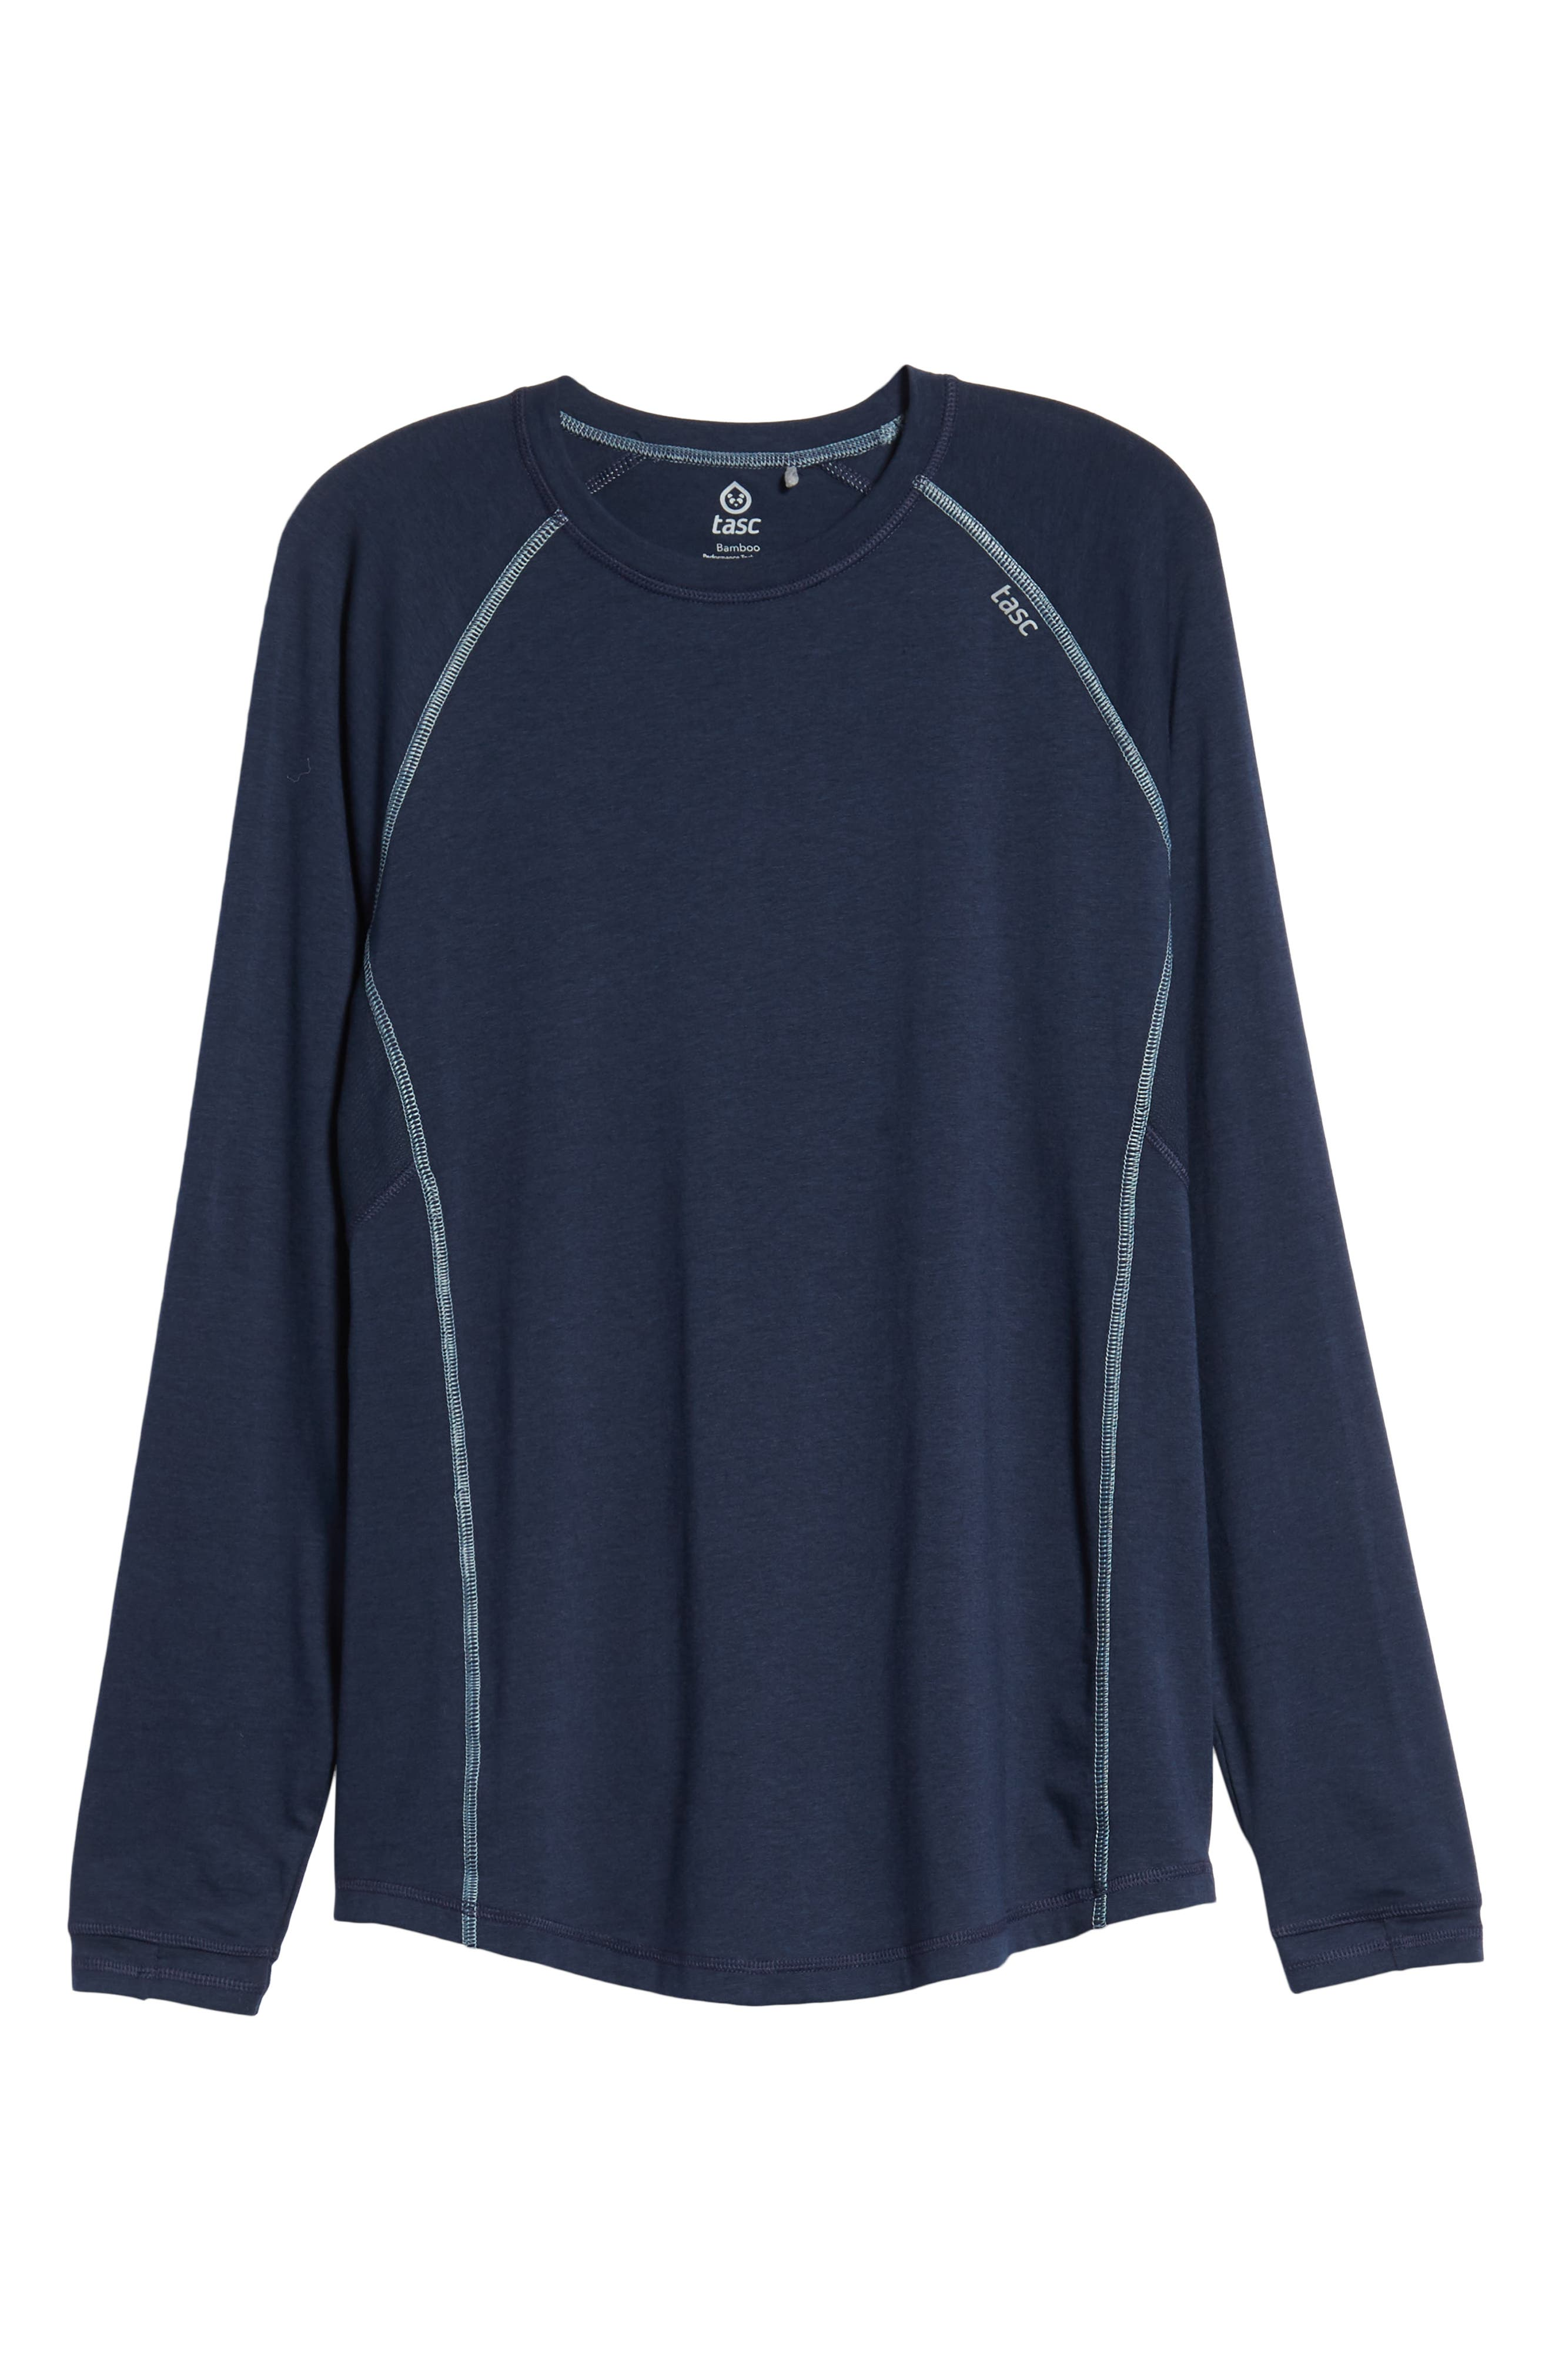 Charge II Long Sleeve T-Shirt,                             Alternate thumbnail 6, color,                             CLASSIC NAVY/ TRANQUILITY SEA